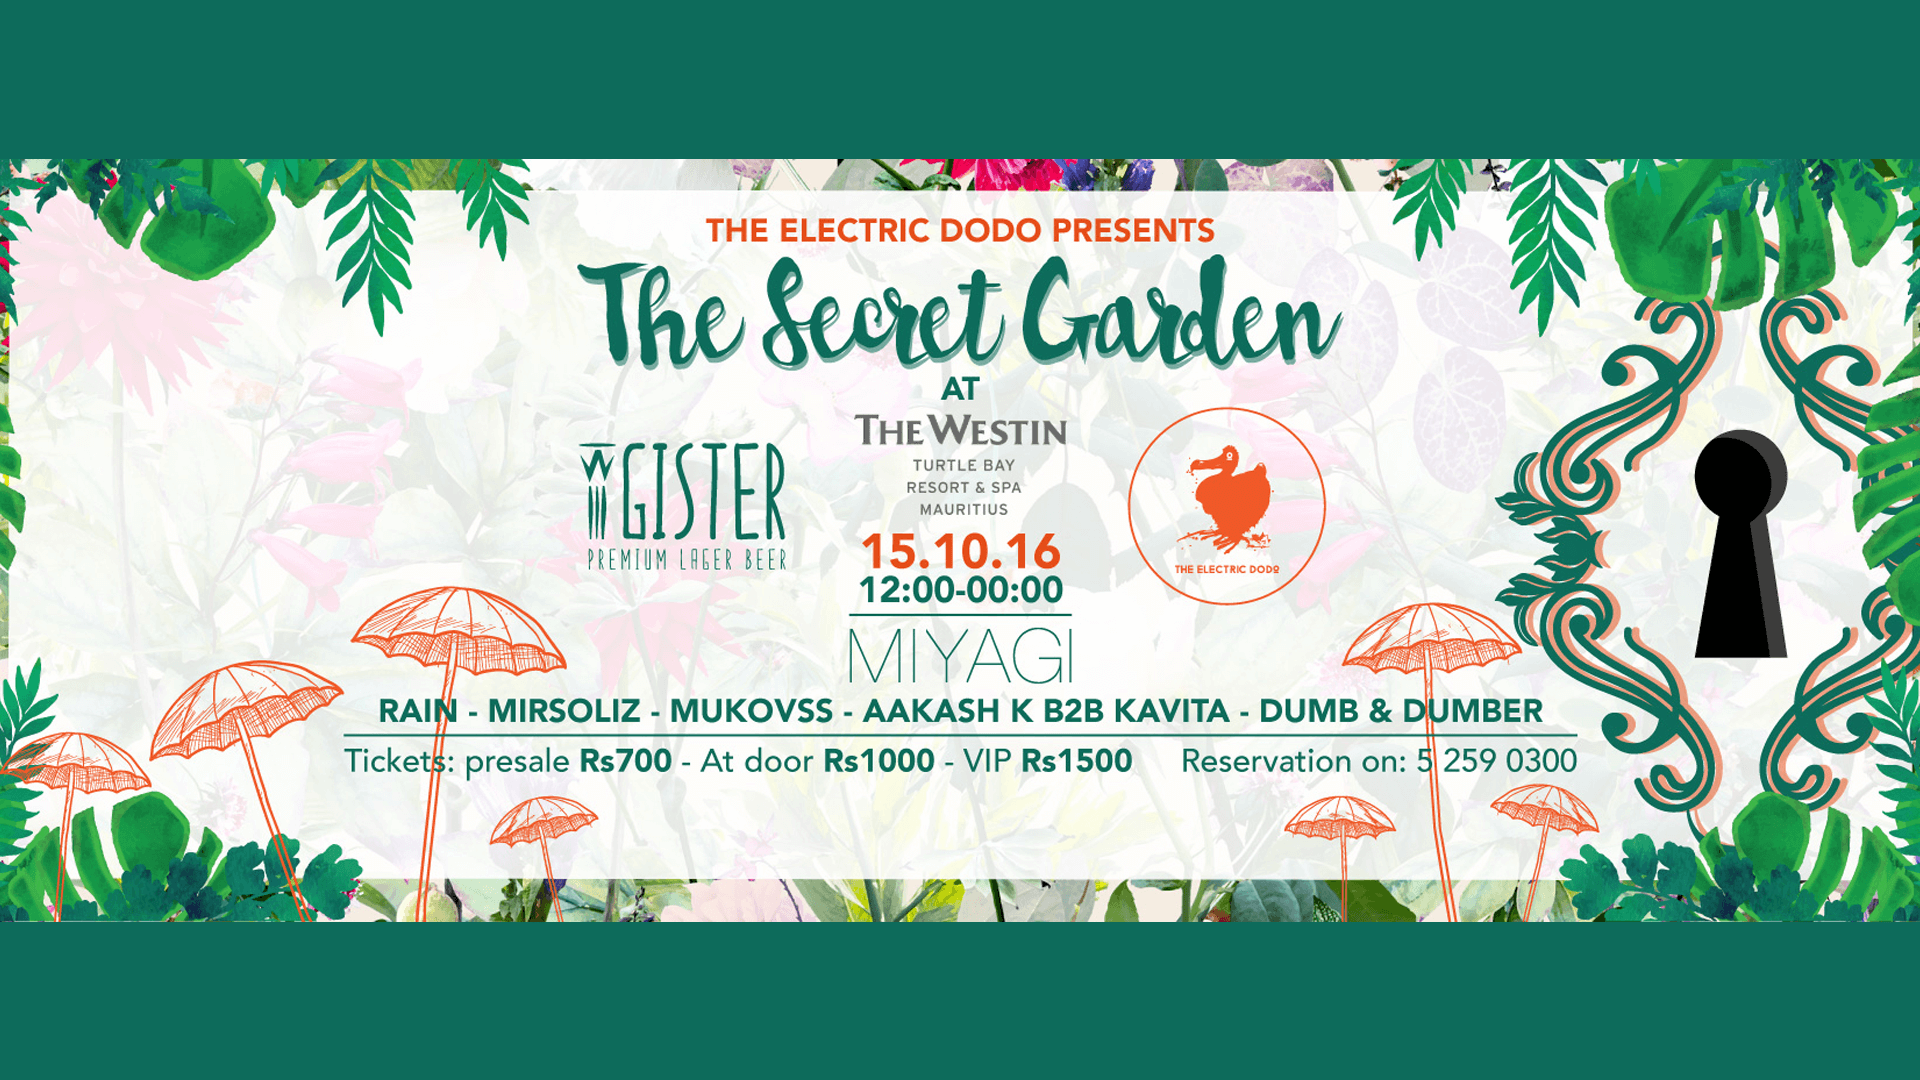 electic-dodo-the-secret-garden